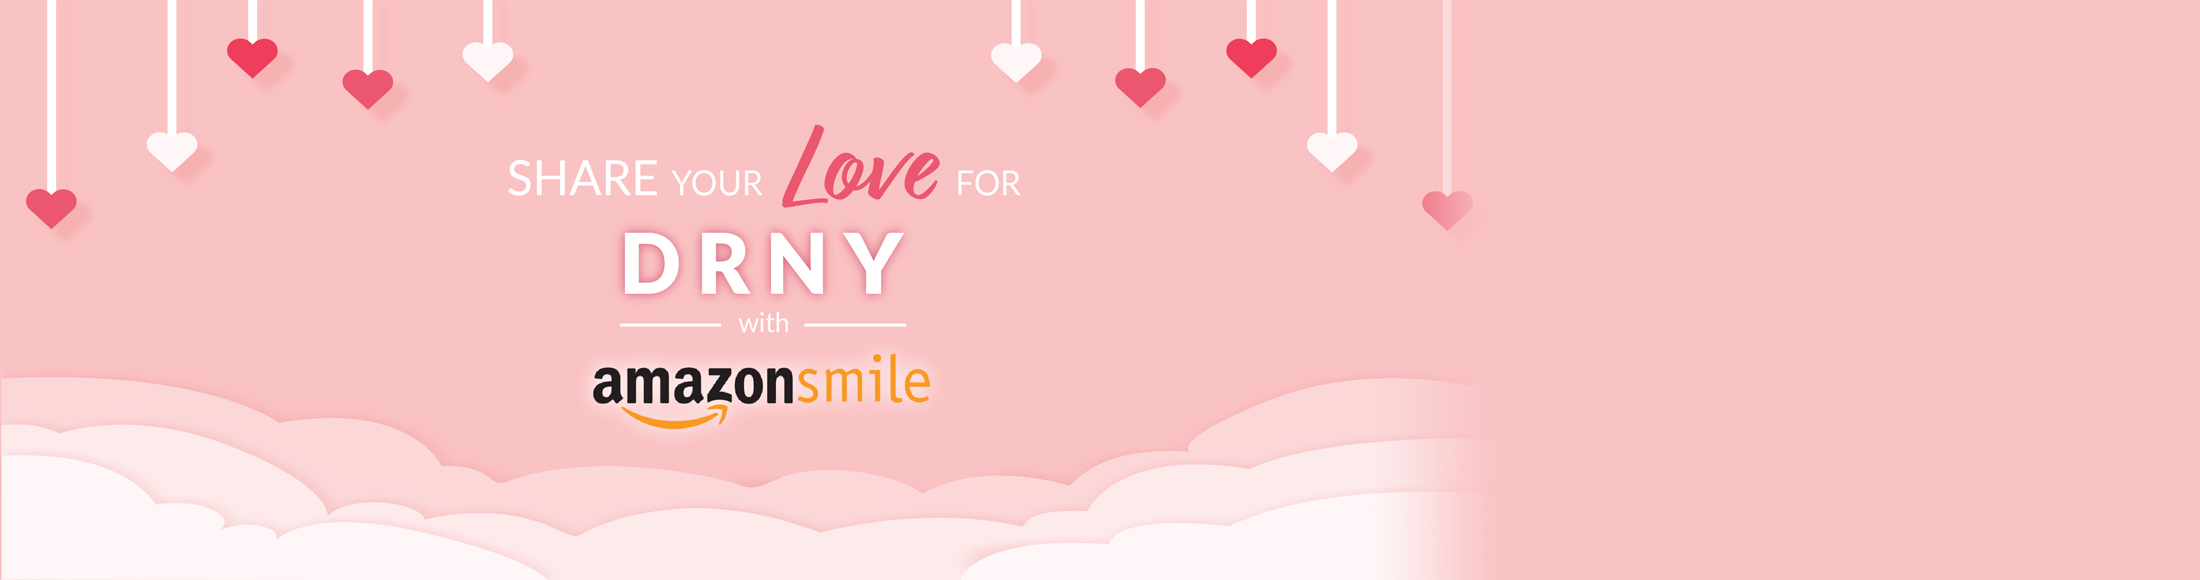 Pink background with floating hearts text reads - share your love for drny  with Amazon Smile